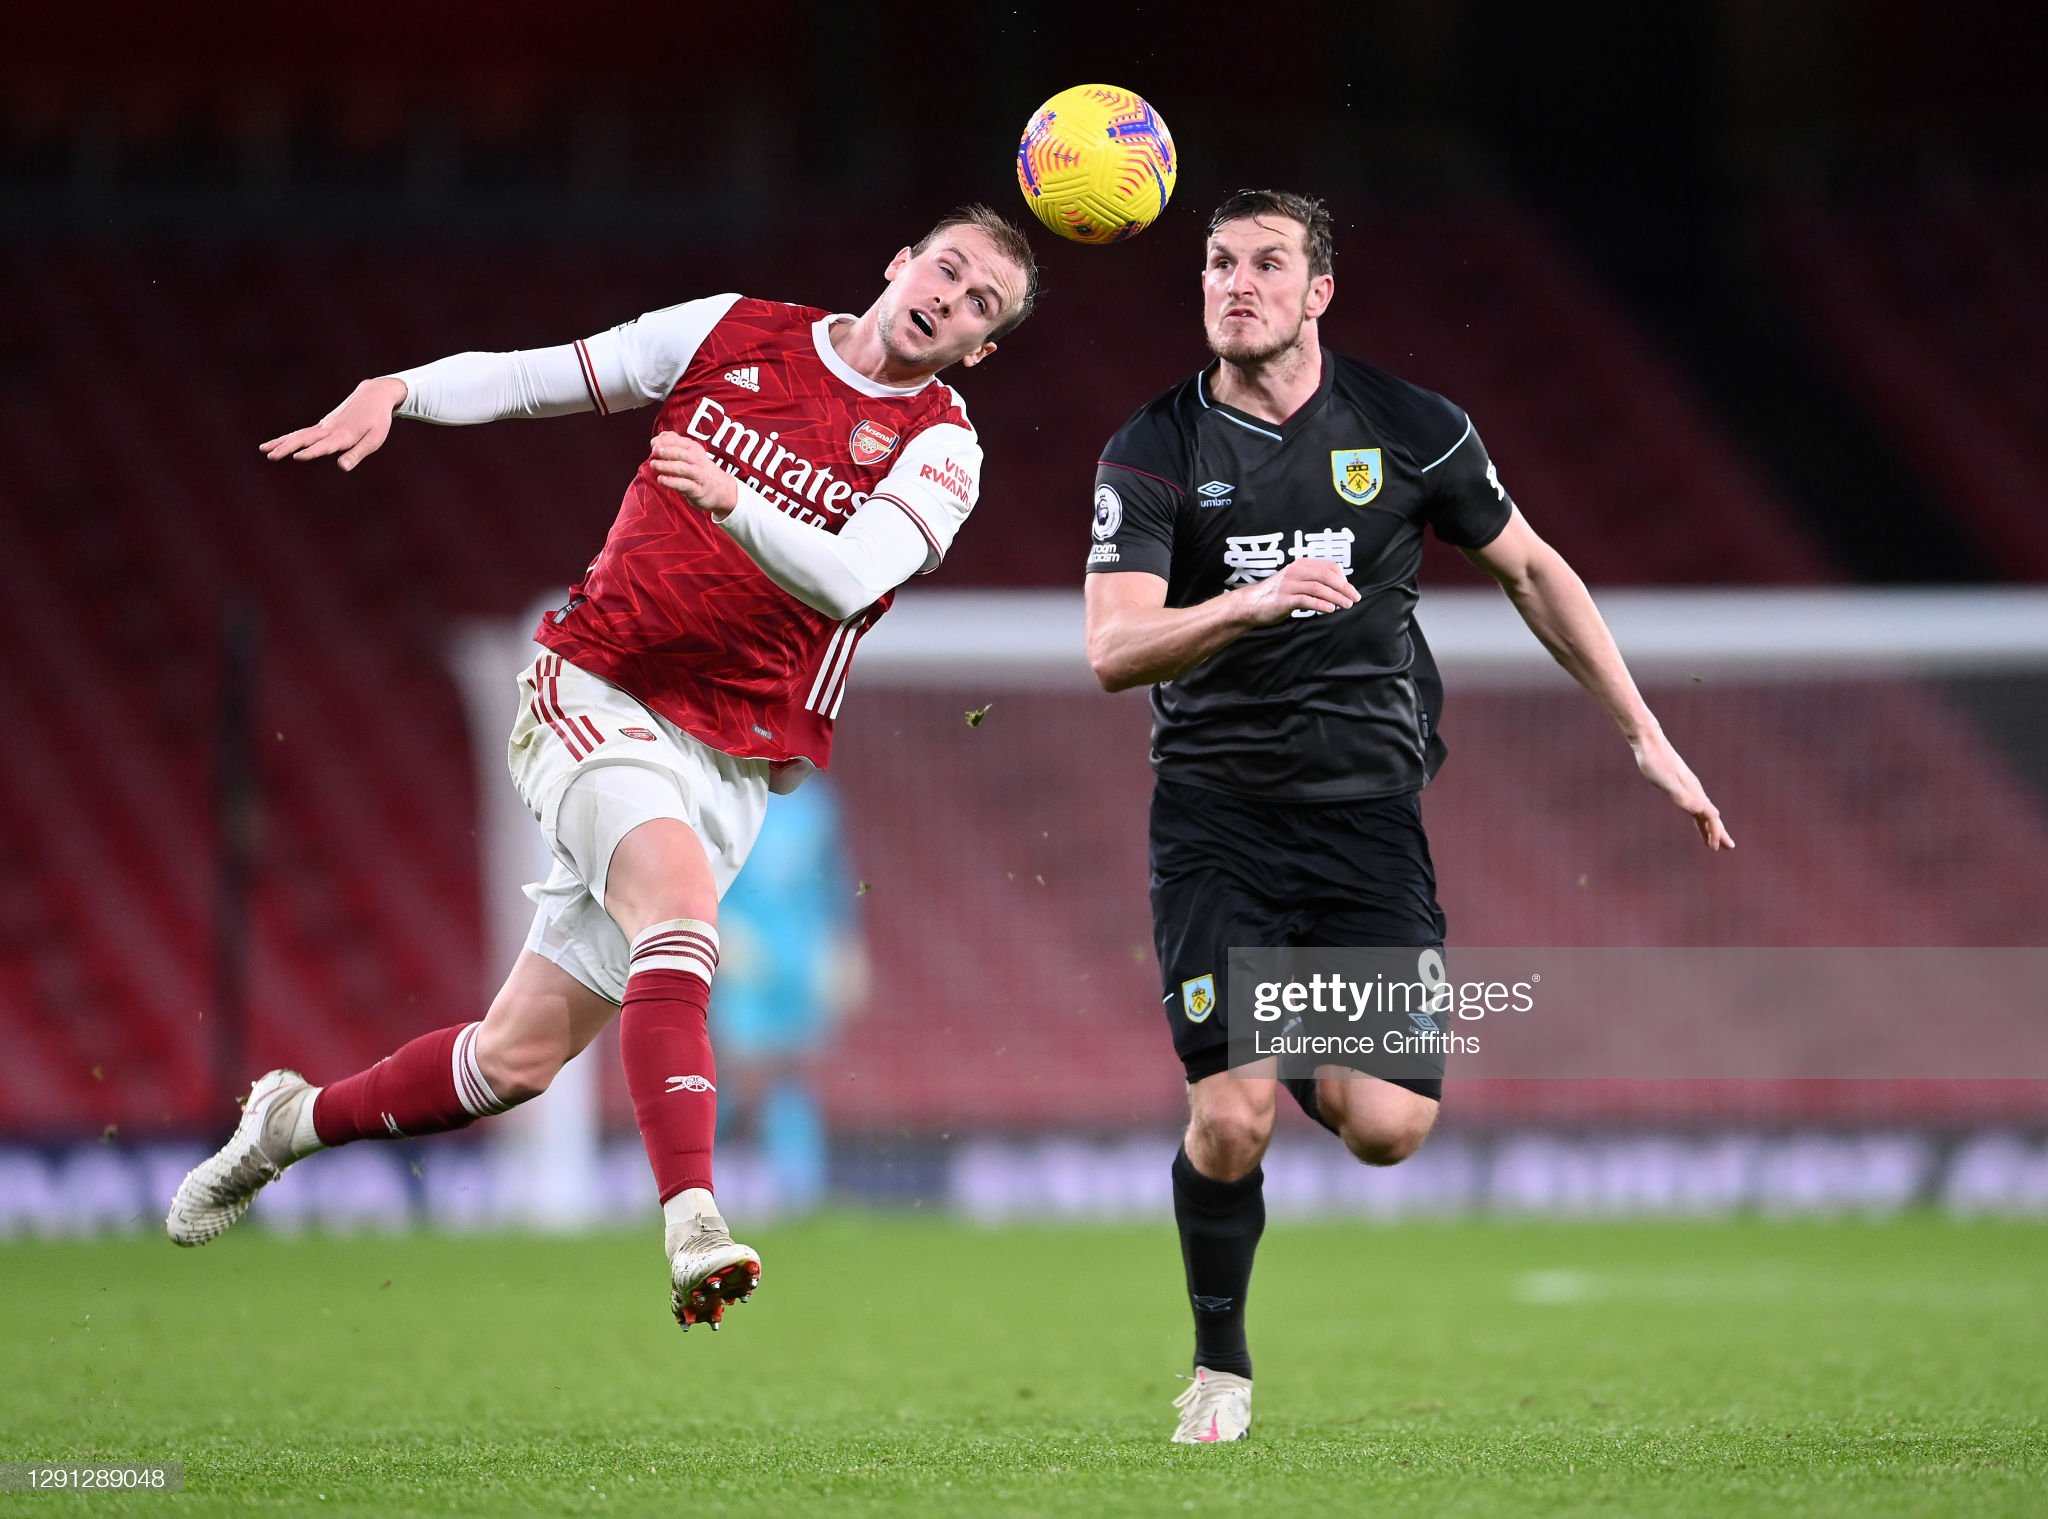 Burnley vs Arsenal Preview, prediction and odds